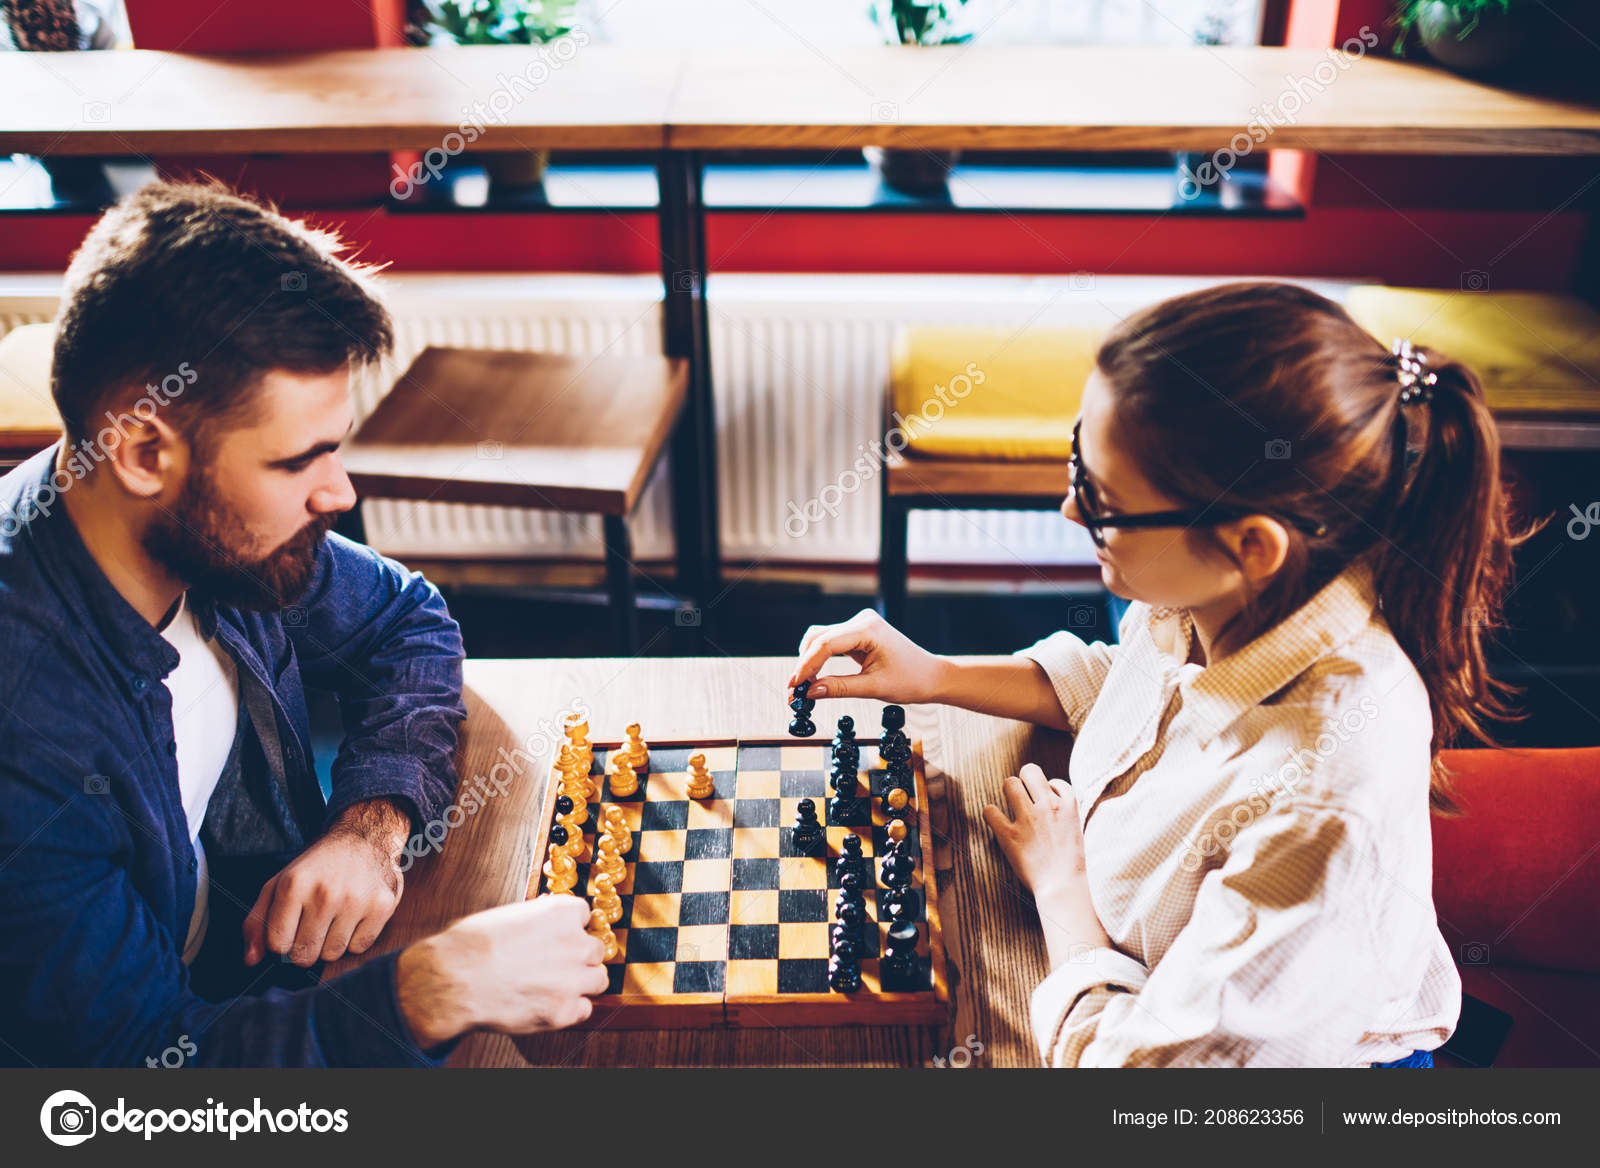 Top View Two Intelligent Hipster Students Playing Chess